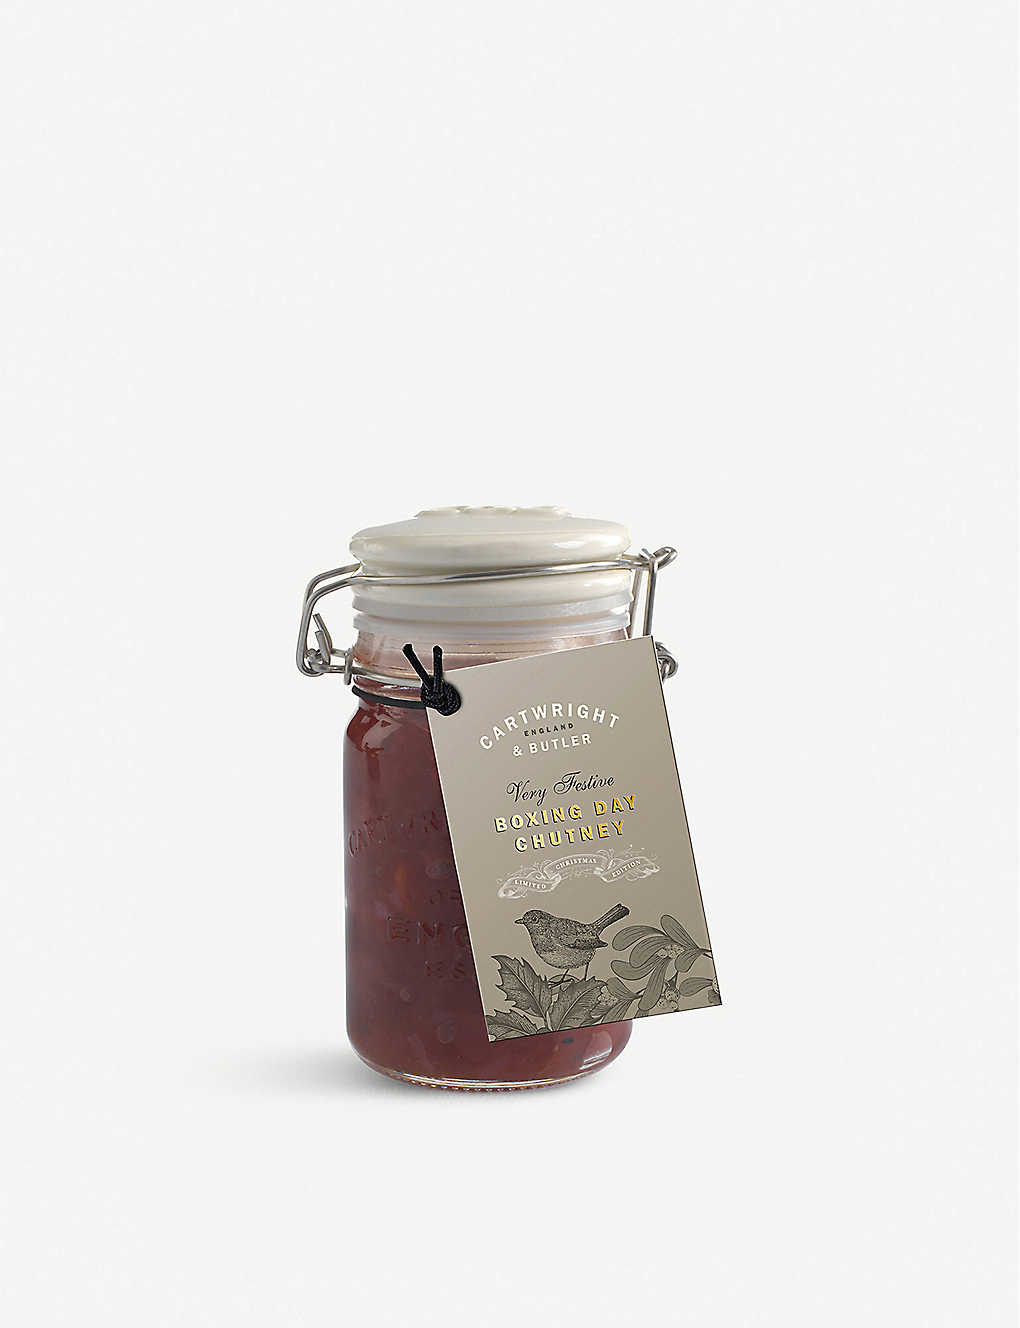 CHRISTMAS: Boxing Day chutney 250g